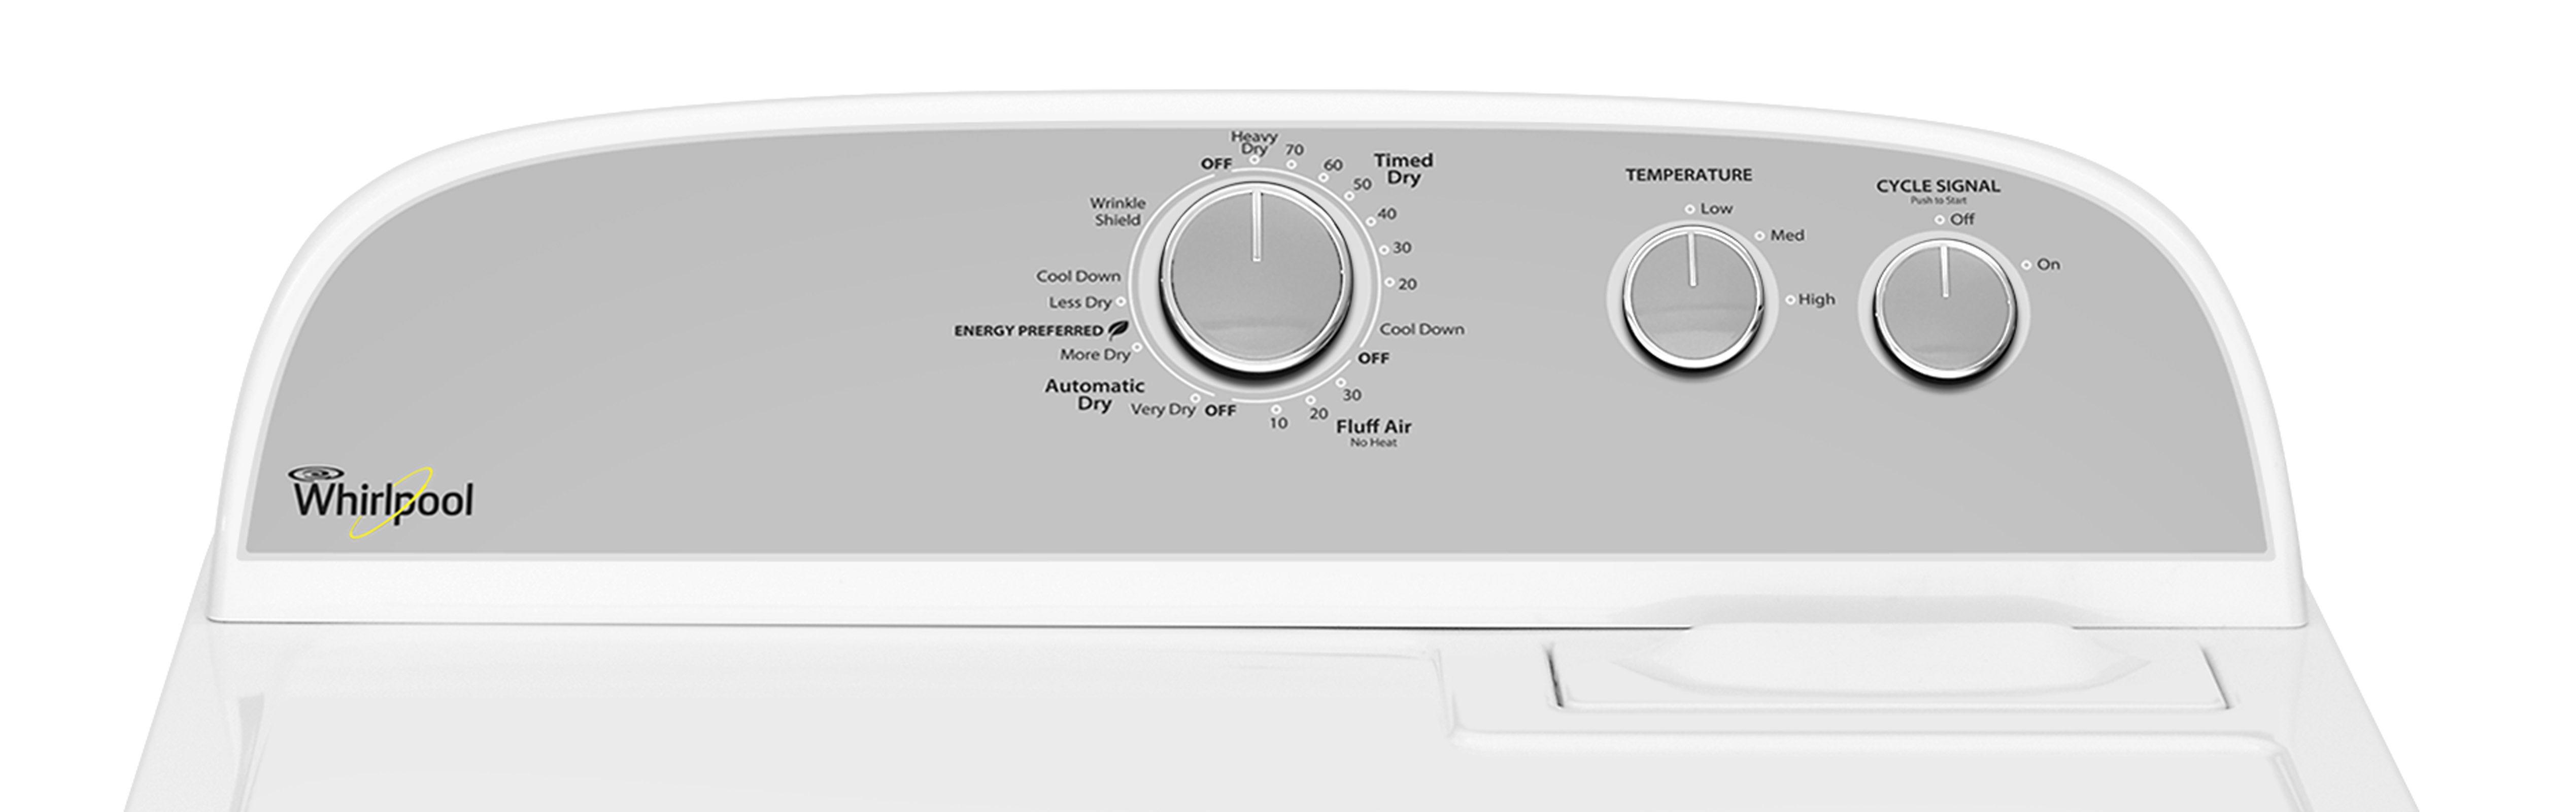 Whirlpool WED4815EW 7.0 cu. ft. Electric Dryer - White